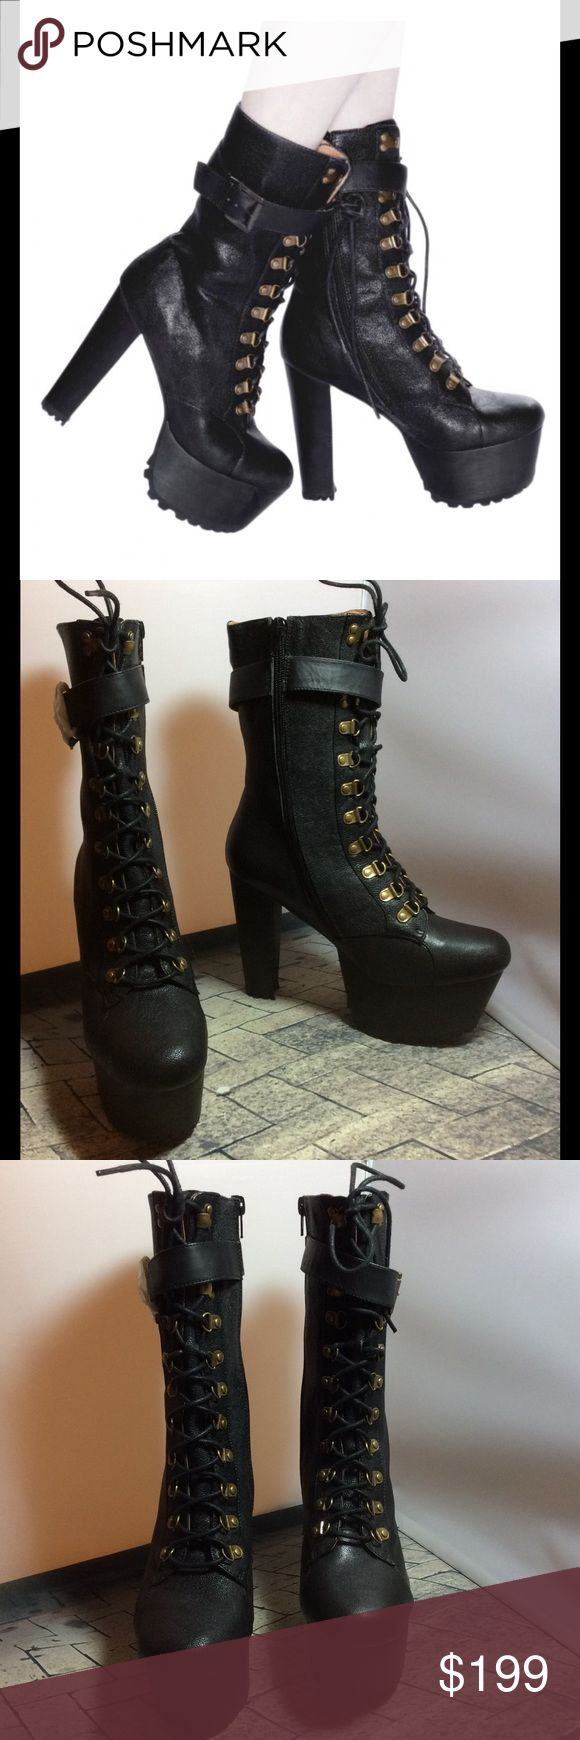 """NWOT Jeffrey Campbell - Sgt Pepper Blk Bootie 8.5 NWOT $270 Jeffrey Campbell X Wildfox - Sergeant Pepper Black Leather Bootie 8.5  WILDFOX and JC...so you know it's amazing. SGT. PEPPER is military meets major 5 1/2"""" heel and 2"""" platform. Leather upper, lining and man made sole. RUN A FULL SIZE SMALL so best for a size 7-1/2 though marked 8-1/2.Zip and lace up  The heel height: 5"""" w/2"""" platform. Leather upper is 7-1/2 high from heel to boot top Leather lining/rubber sole. Genuine Leather…"""